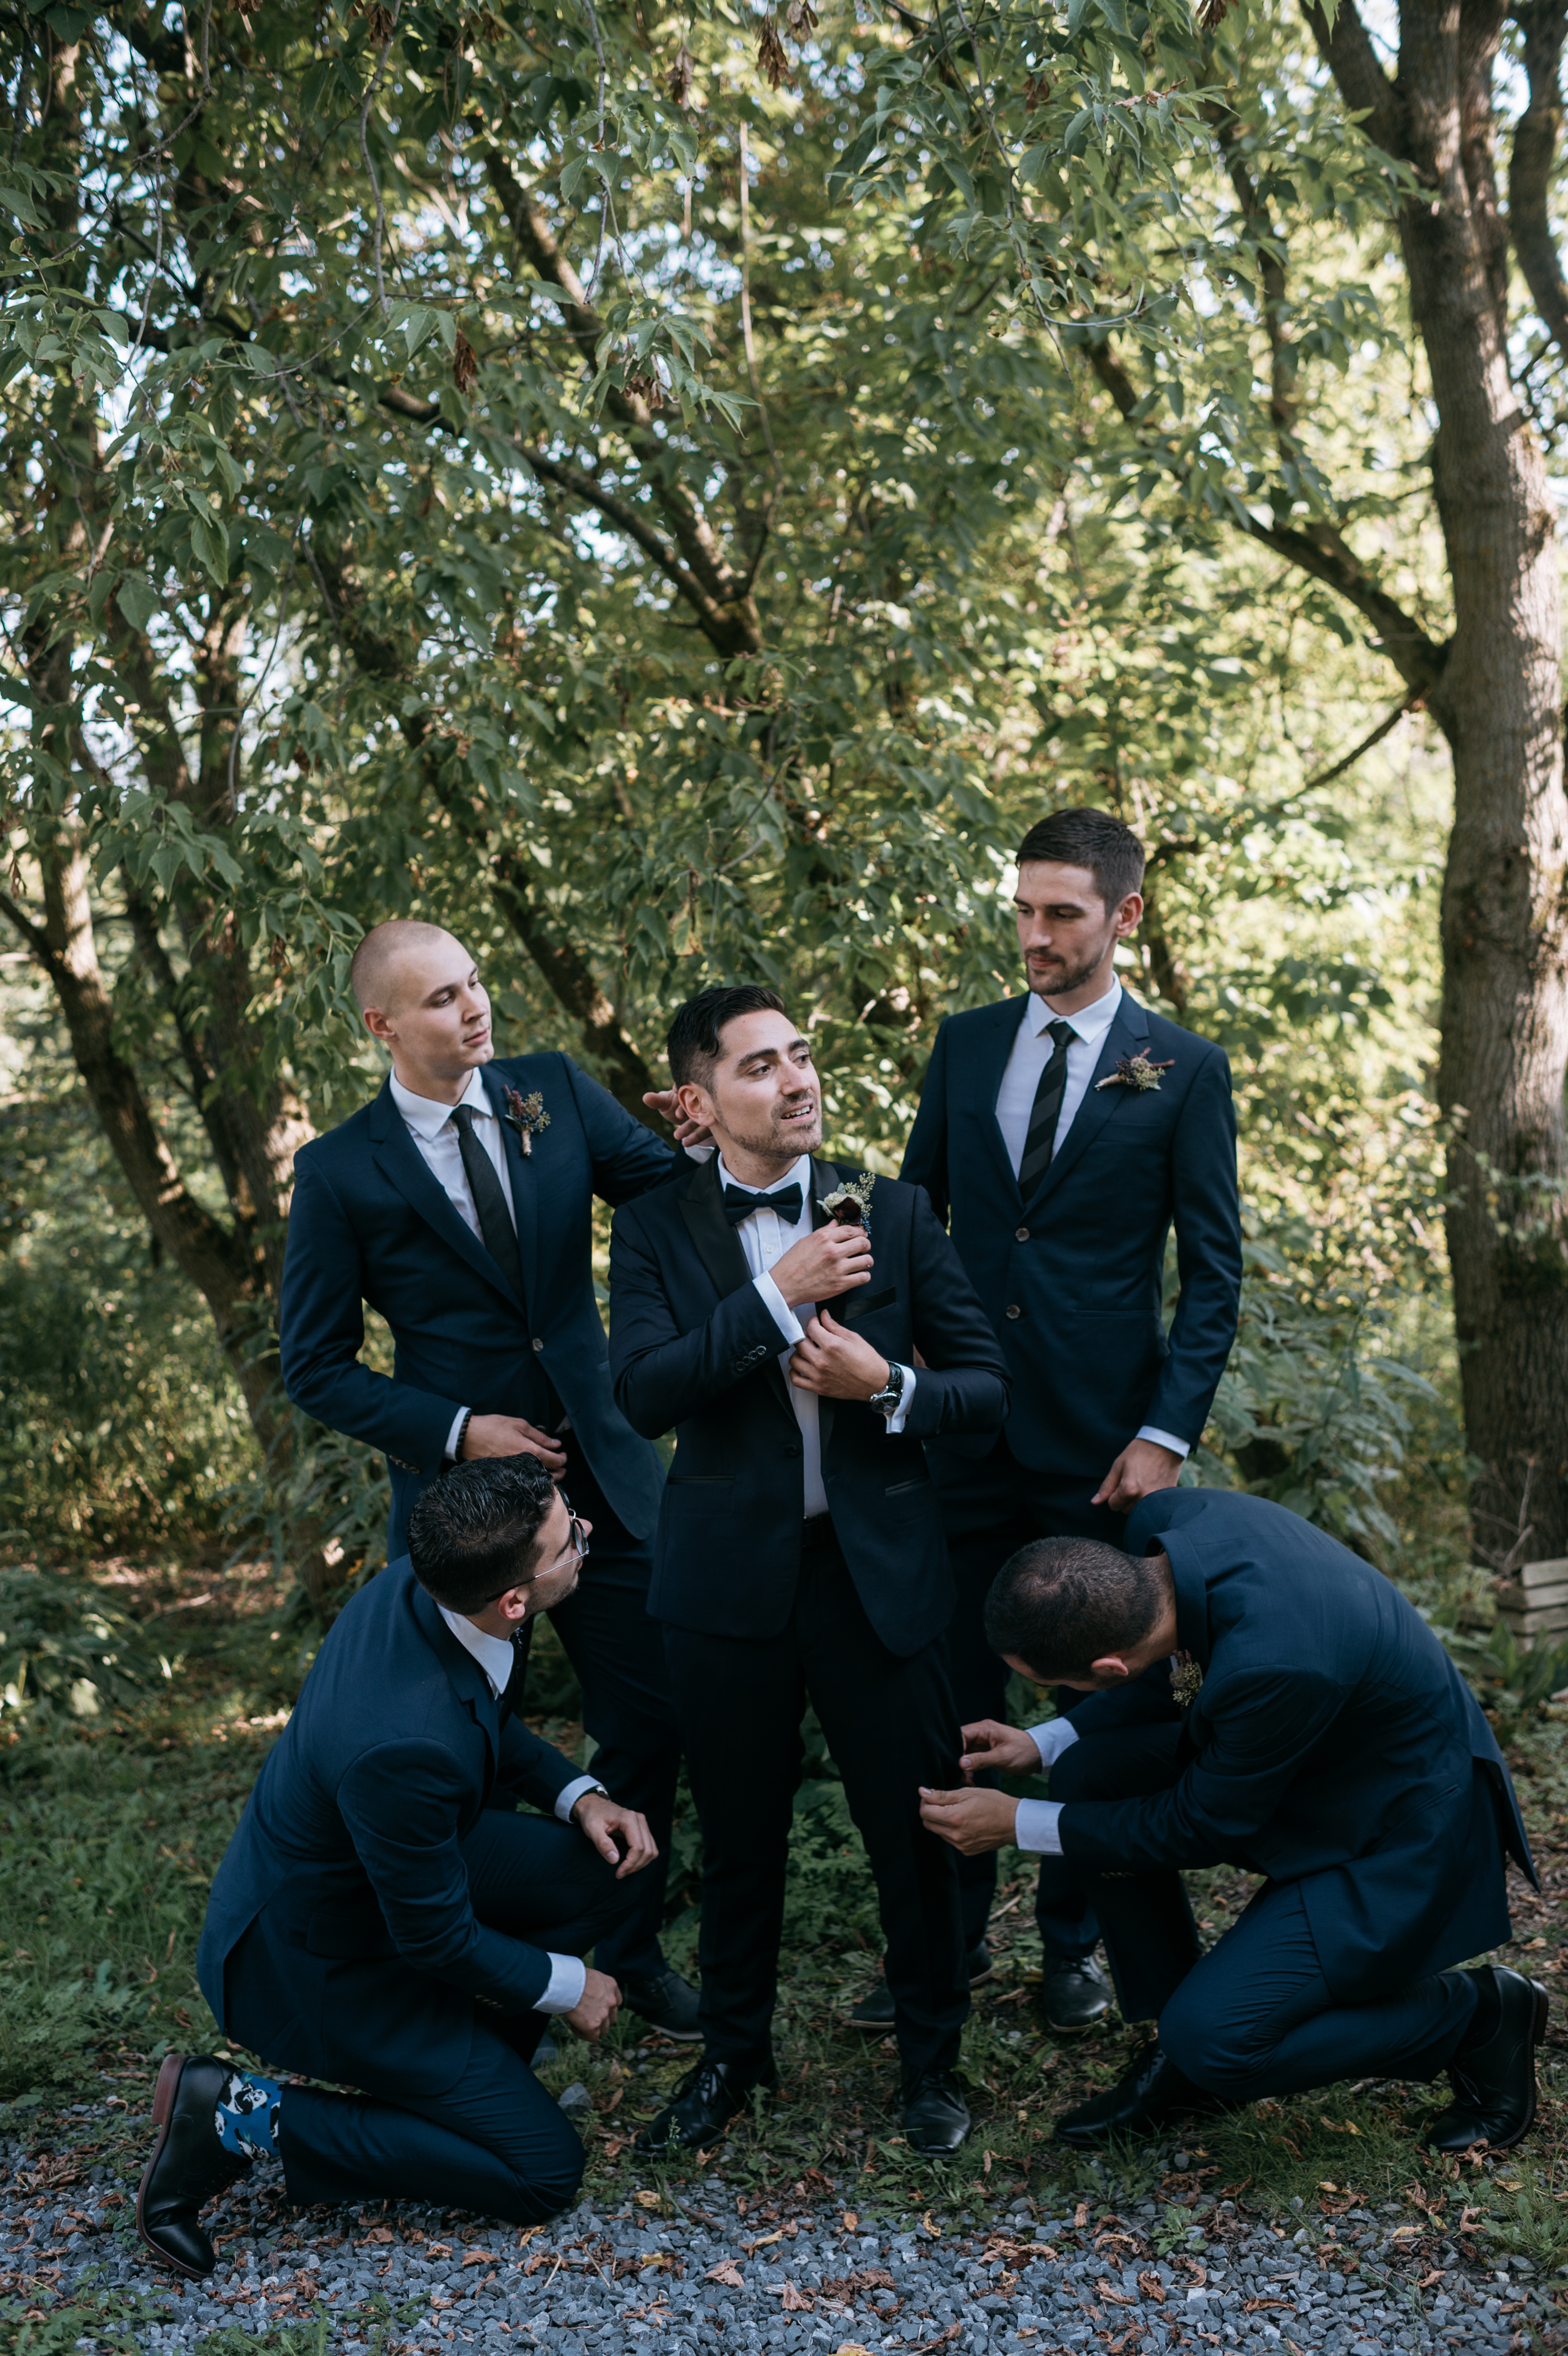 Eastern Townships wedding, groomsmen